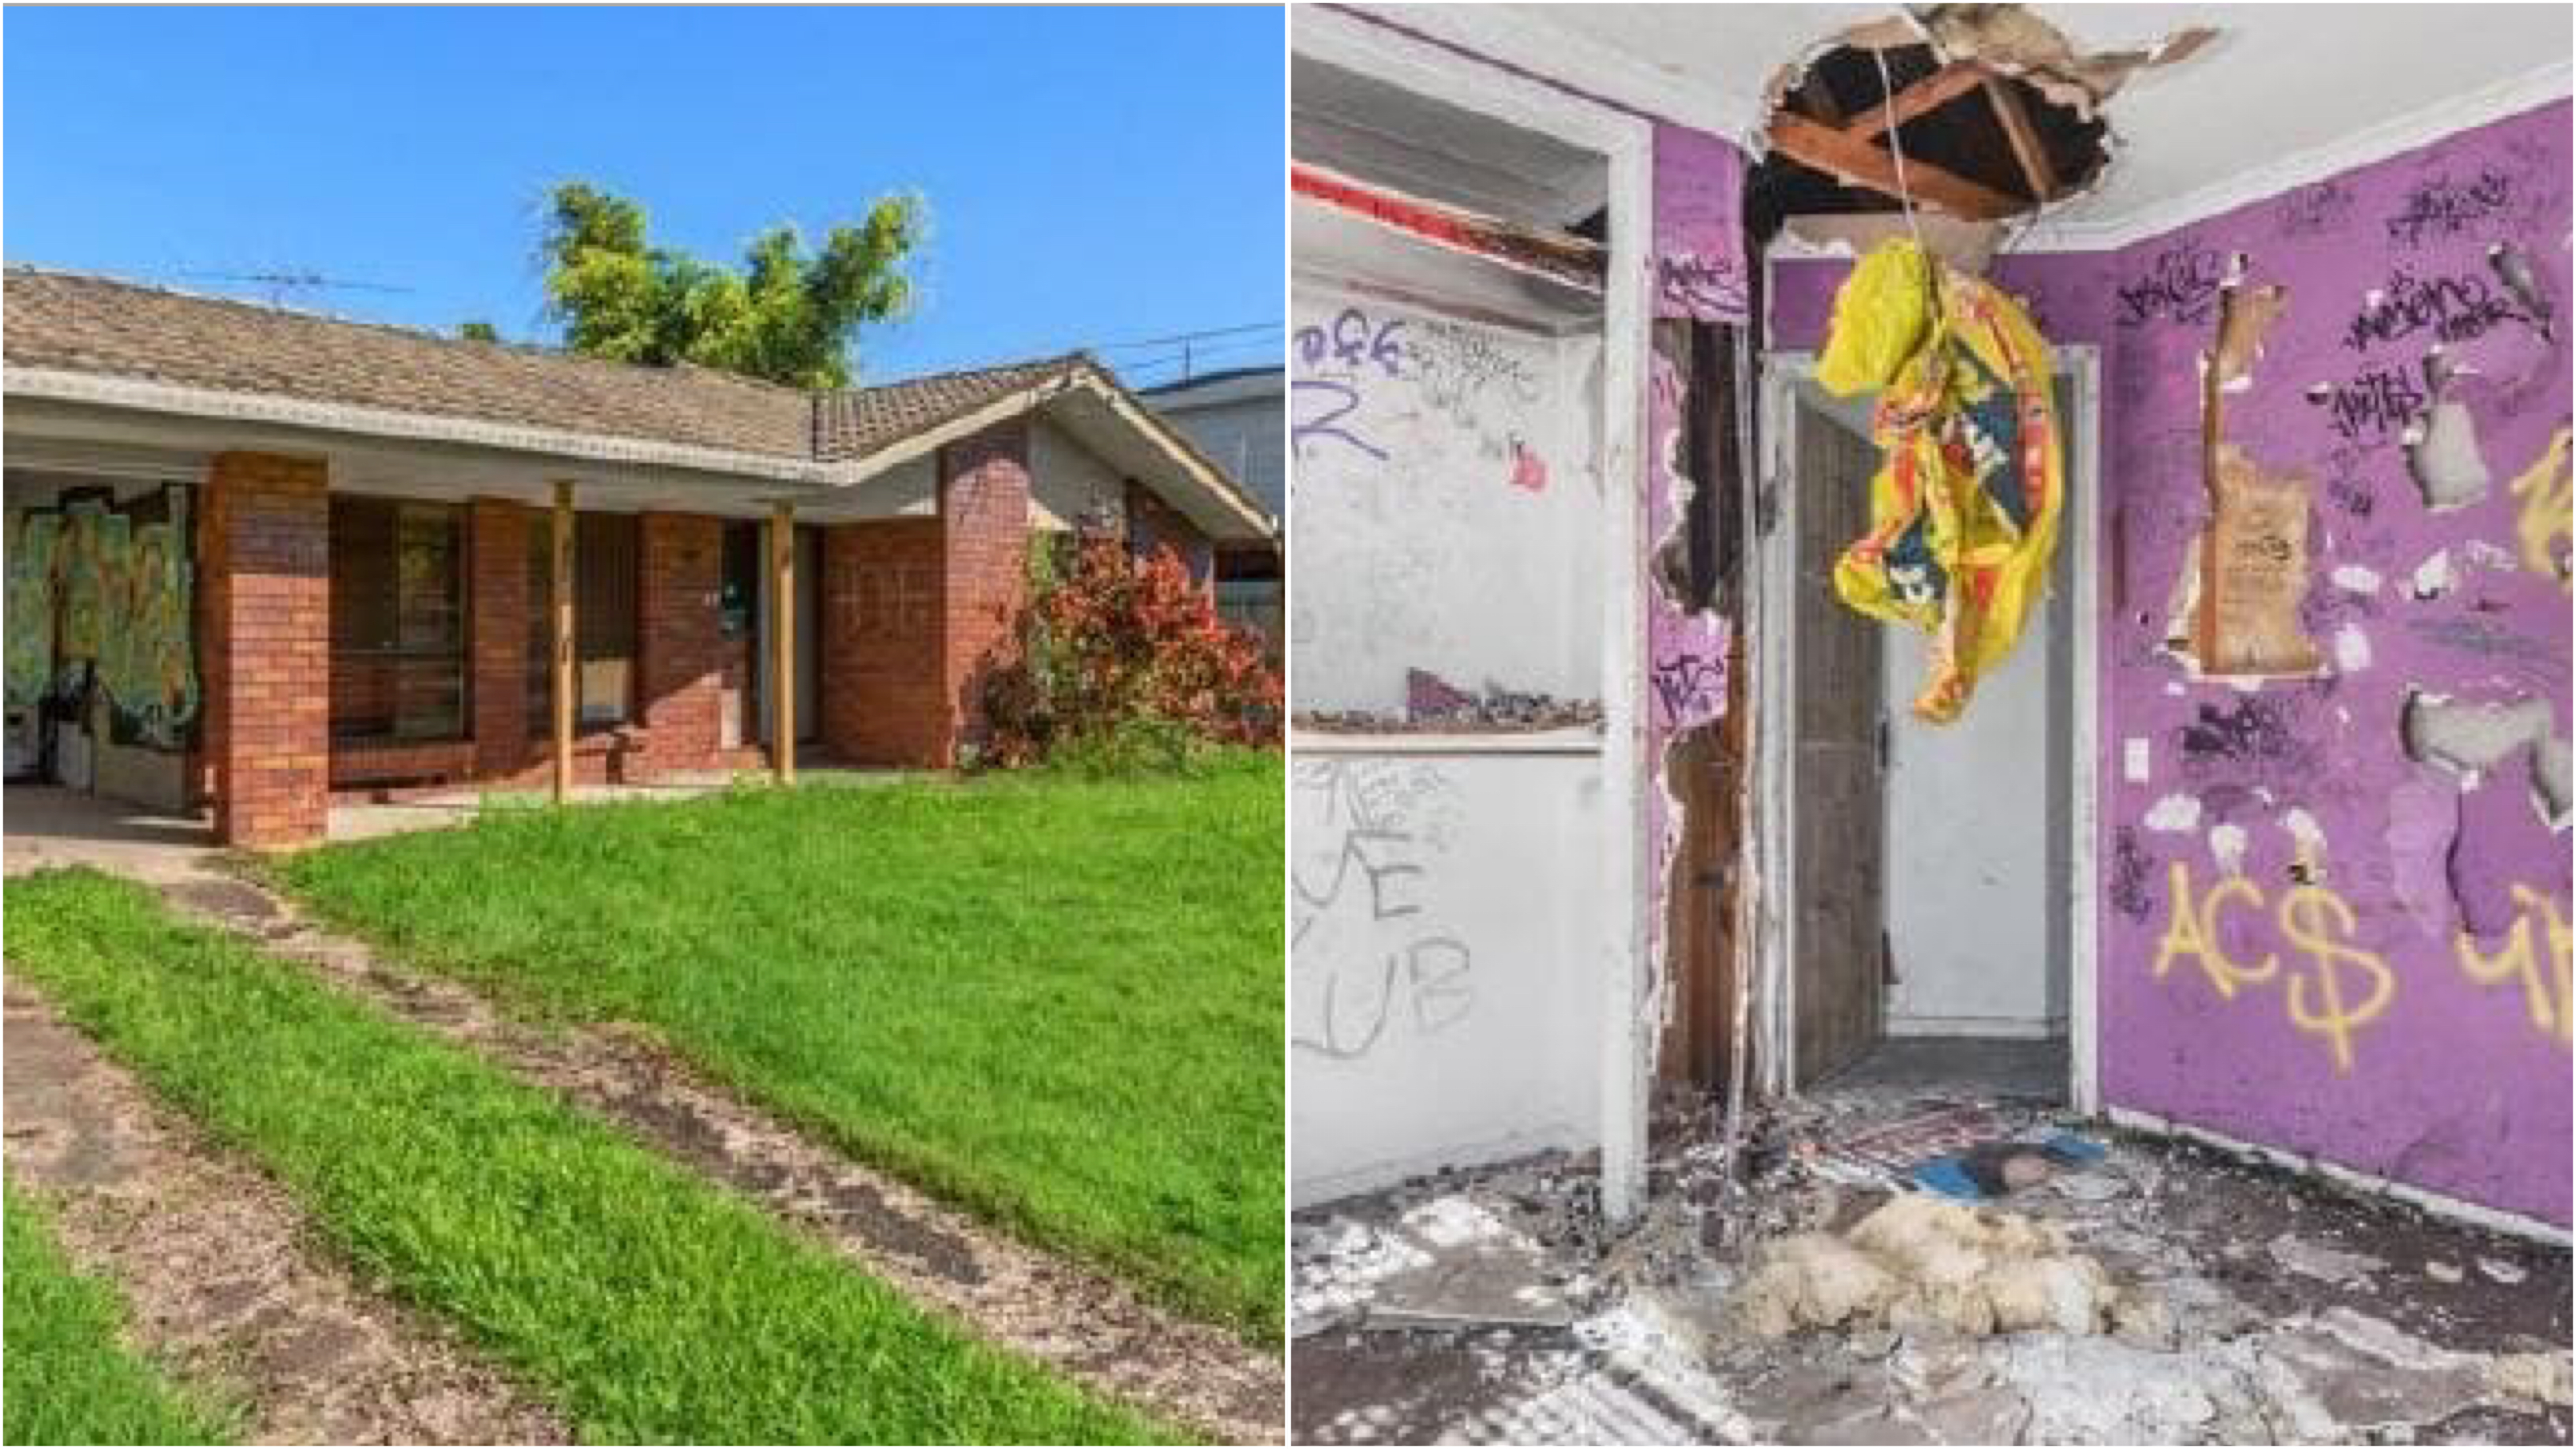 Brisbane's worst house for sale, but there's a catch